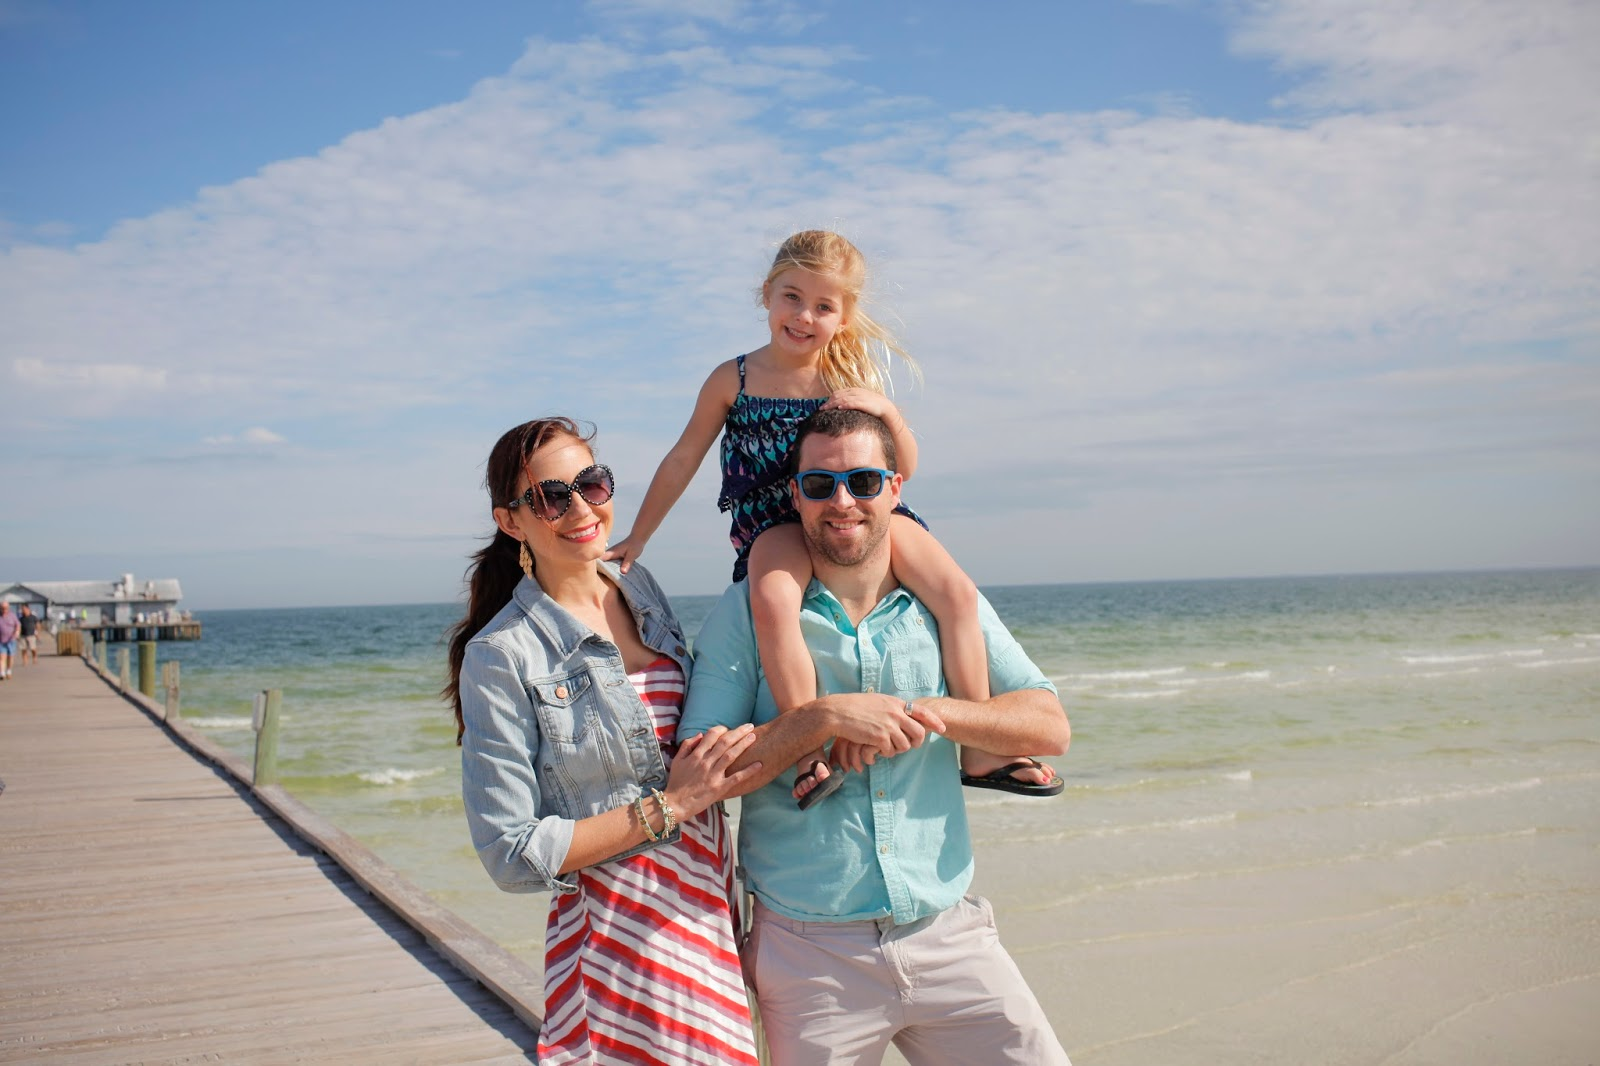 Amy West and family on a fishing pier in Anna Maria Island